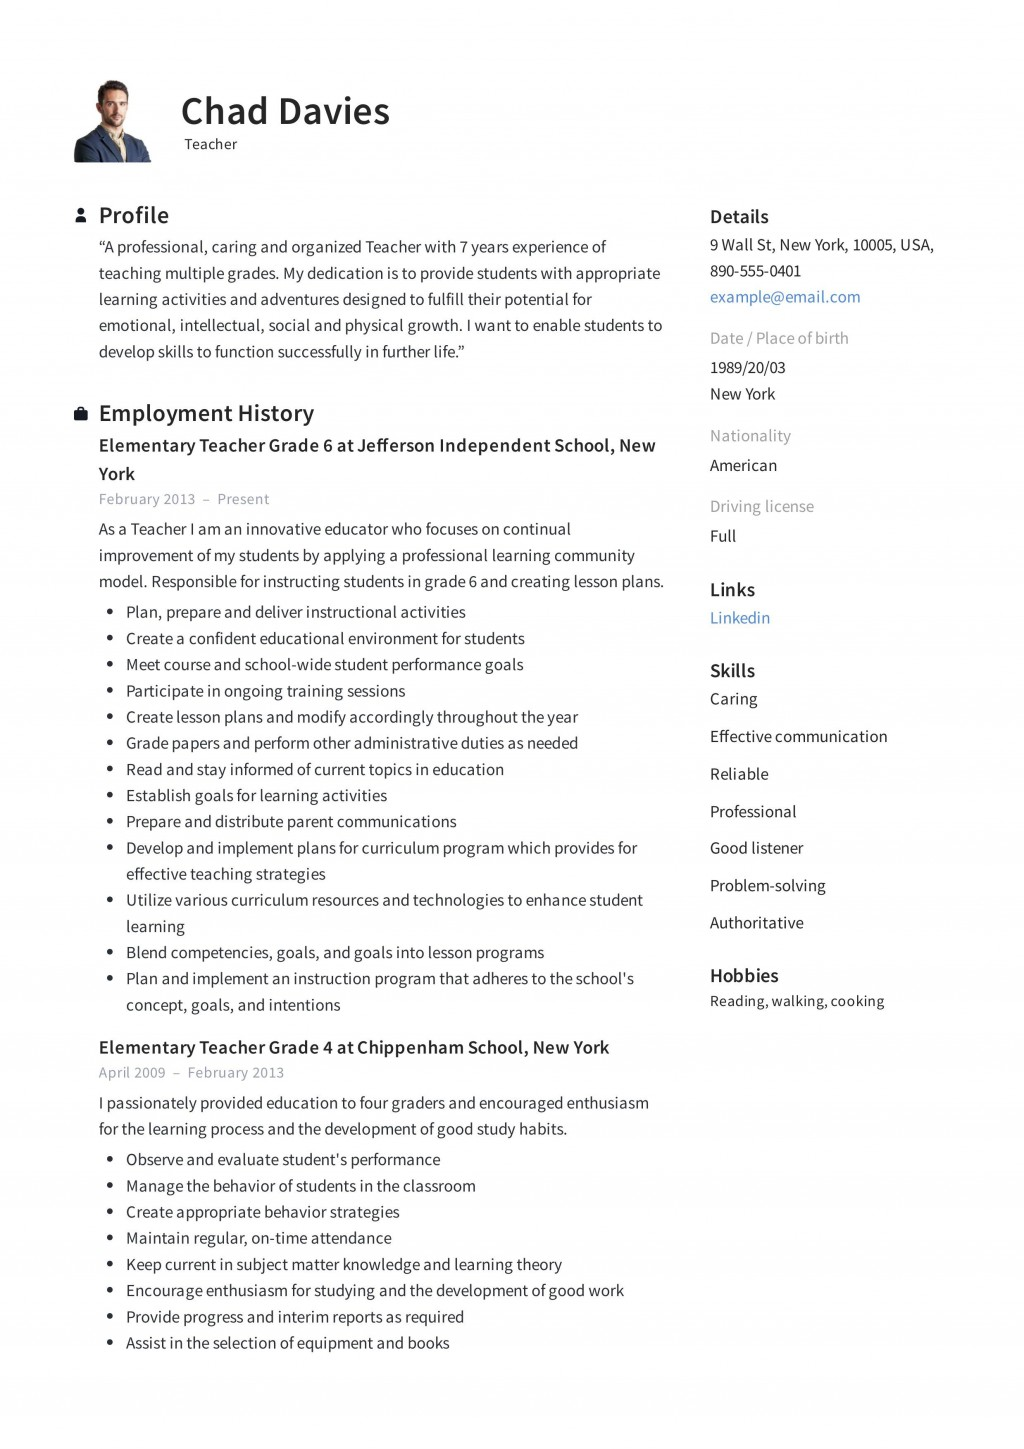 004 Incredible Resume Example For Teaching Job High Def  Jobs Format Sample Curriculum Vitae Profession In IndiaLarge